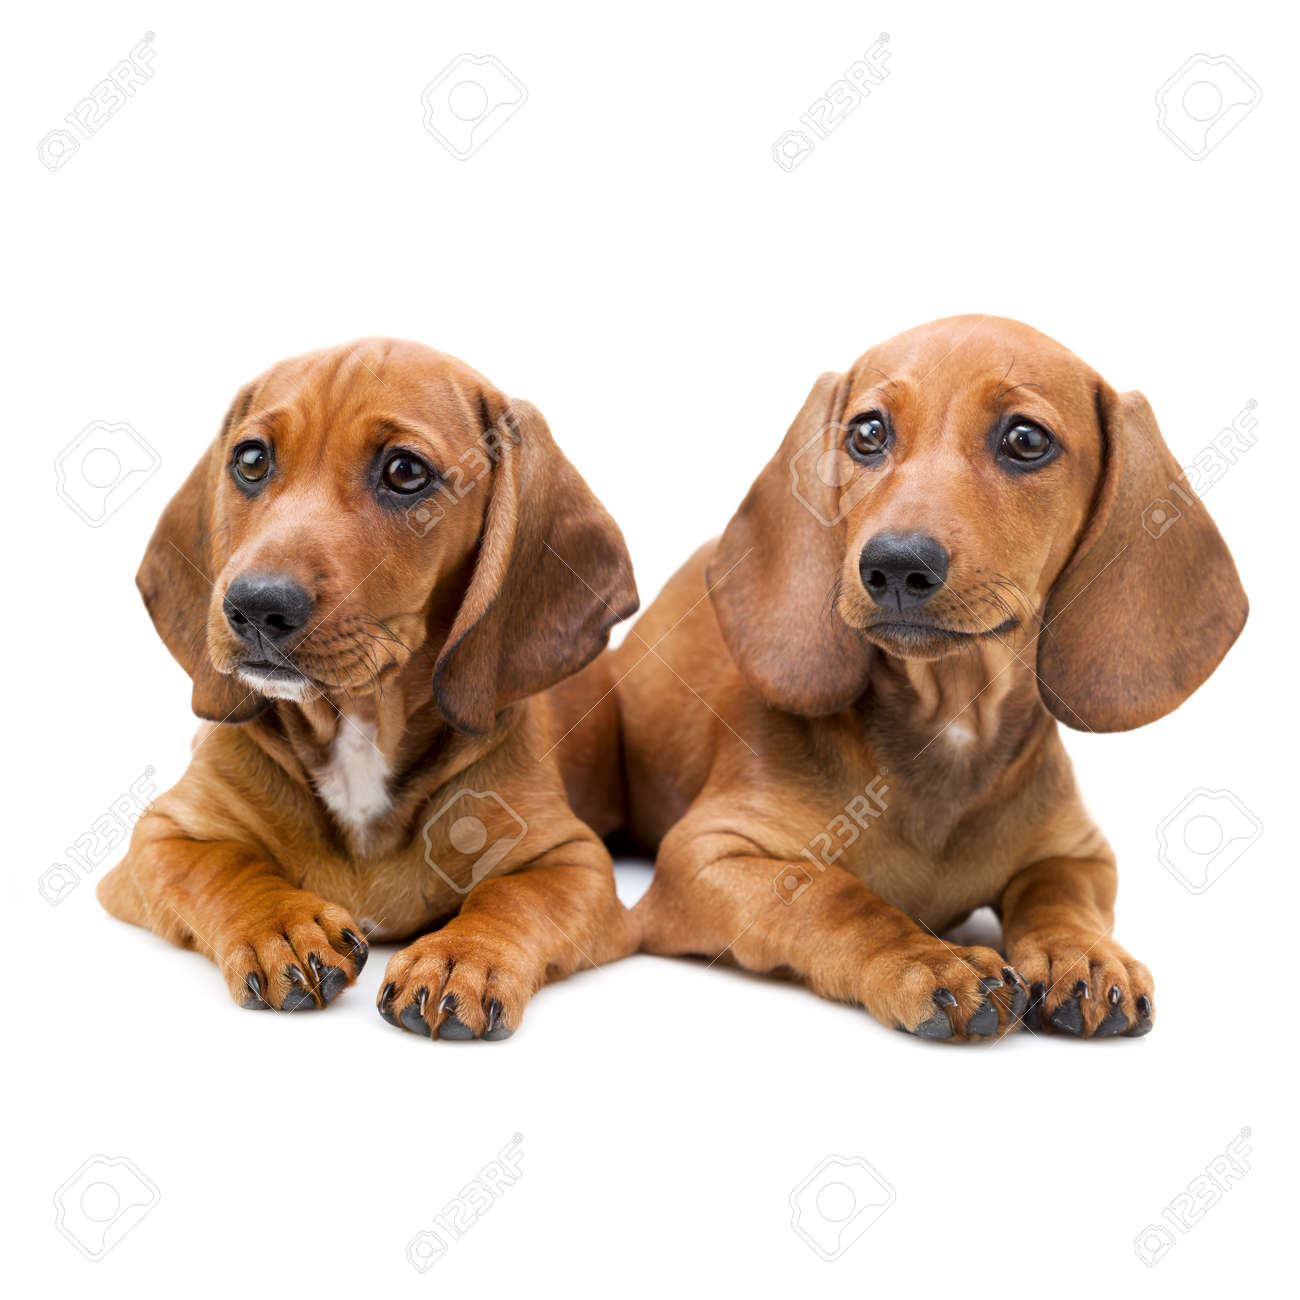 Isolated Two Cute Dachshund Puppies Sitting On White Background Stock Photo Picture And Royalty Free Image Image 23863045